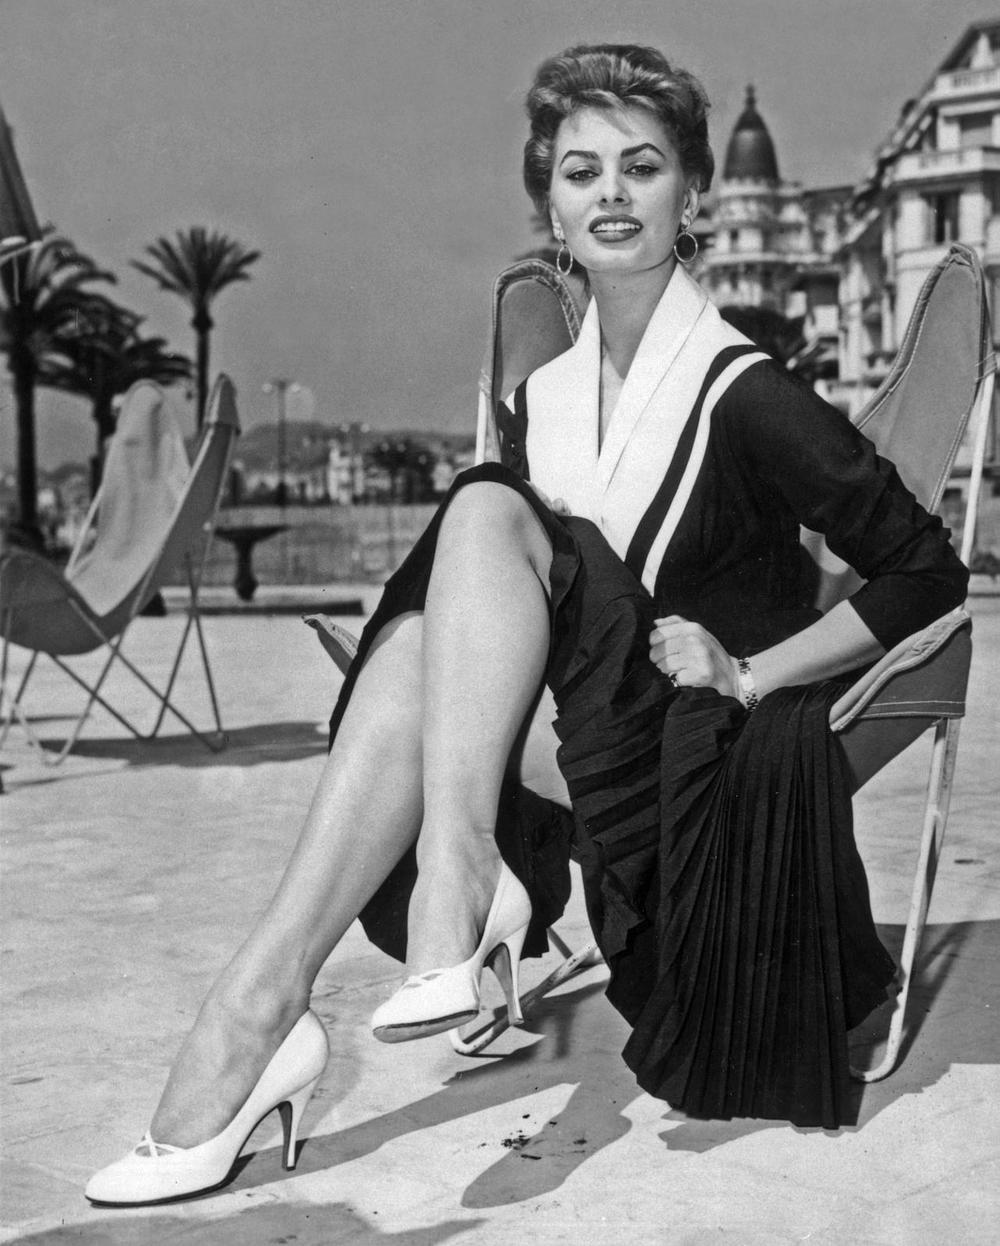 Sophie Loren at the 1954 Cannes Film Festival